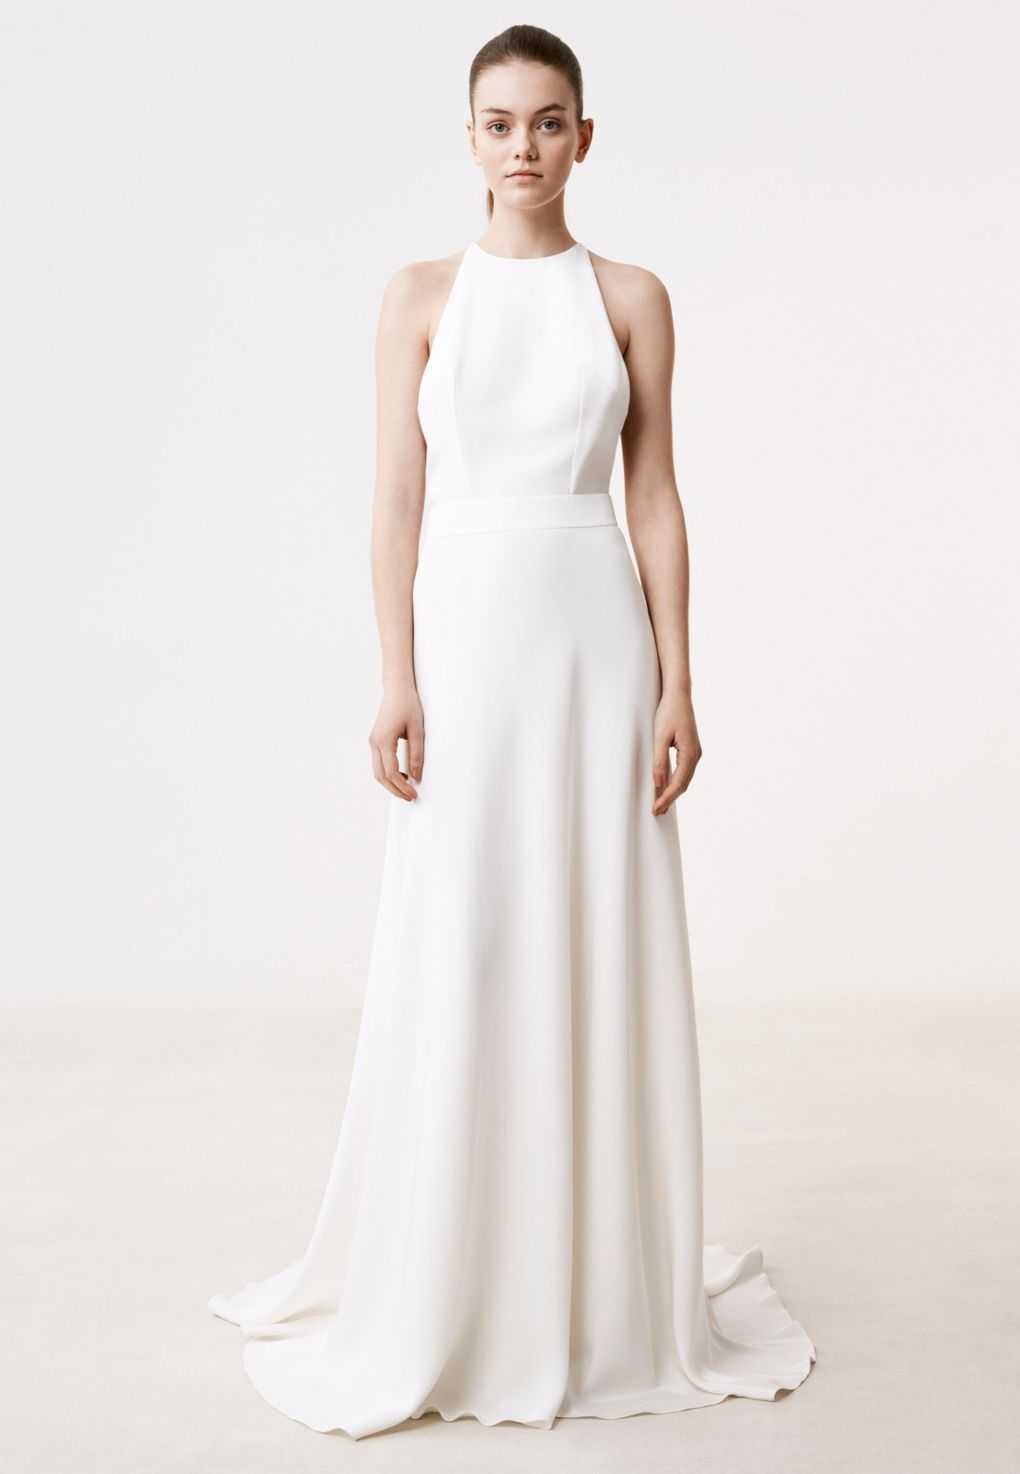 The gauthier dress features an american style neckline the bare